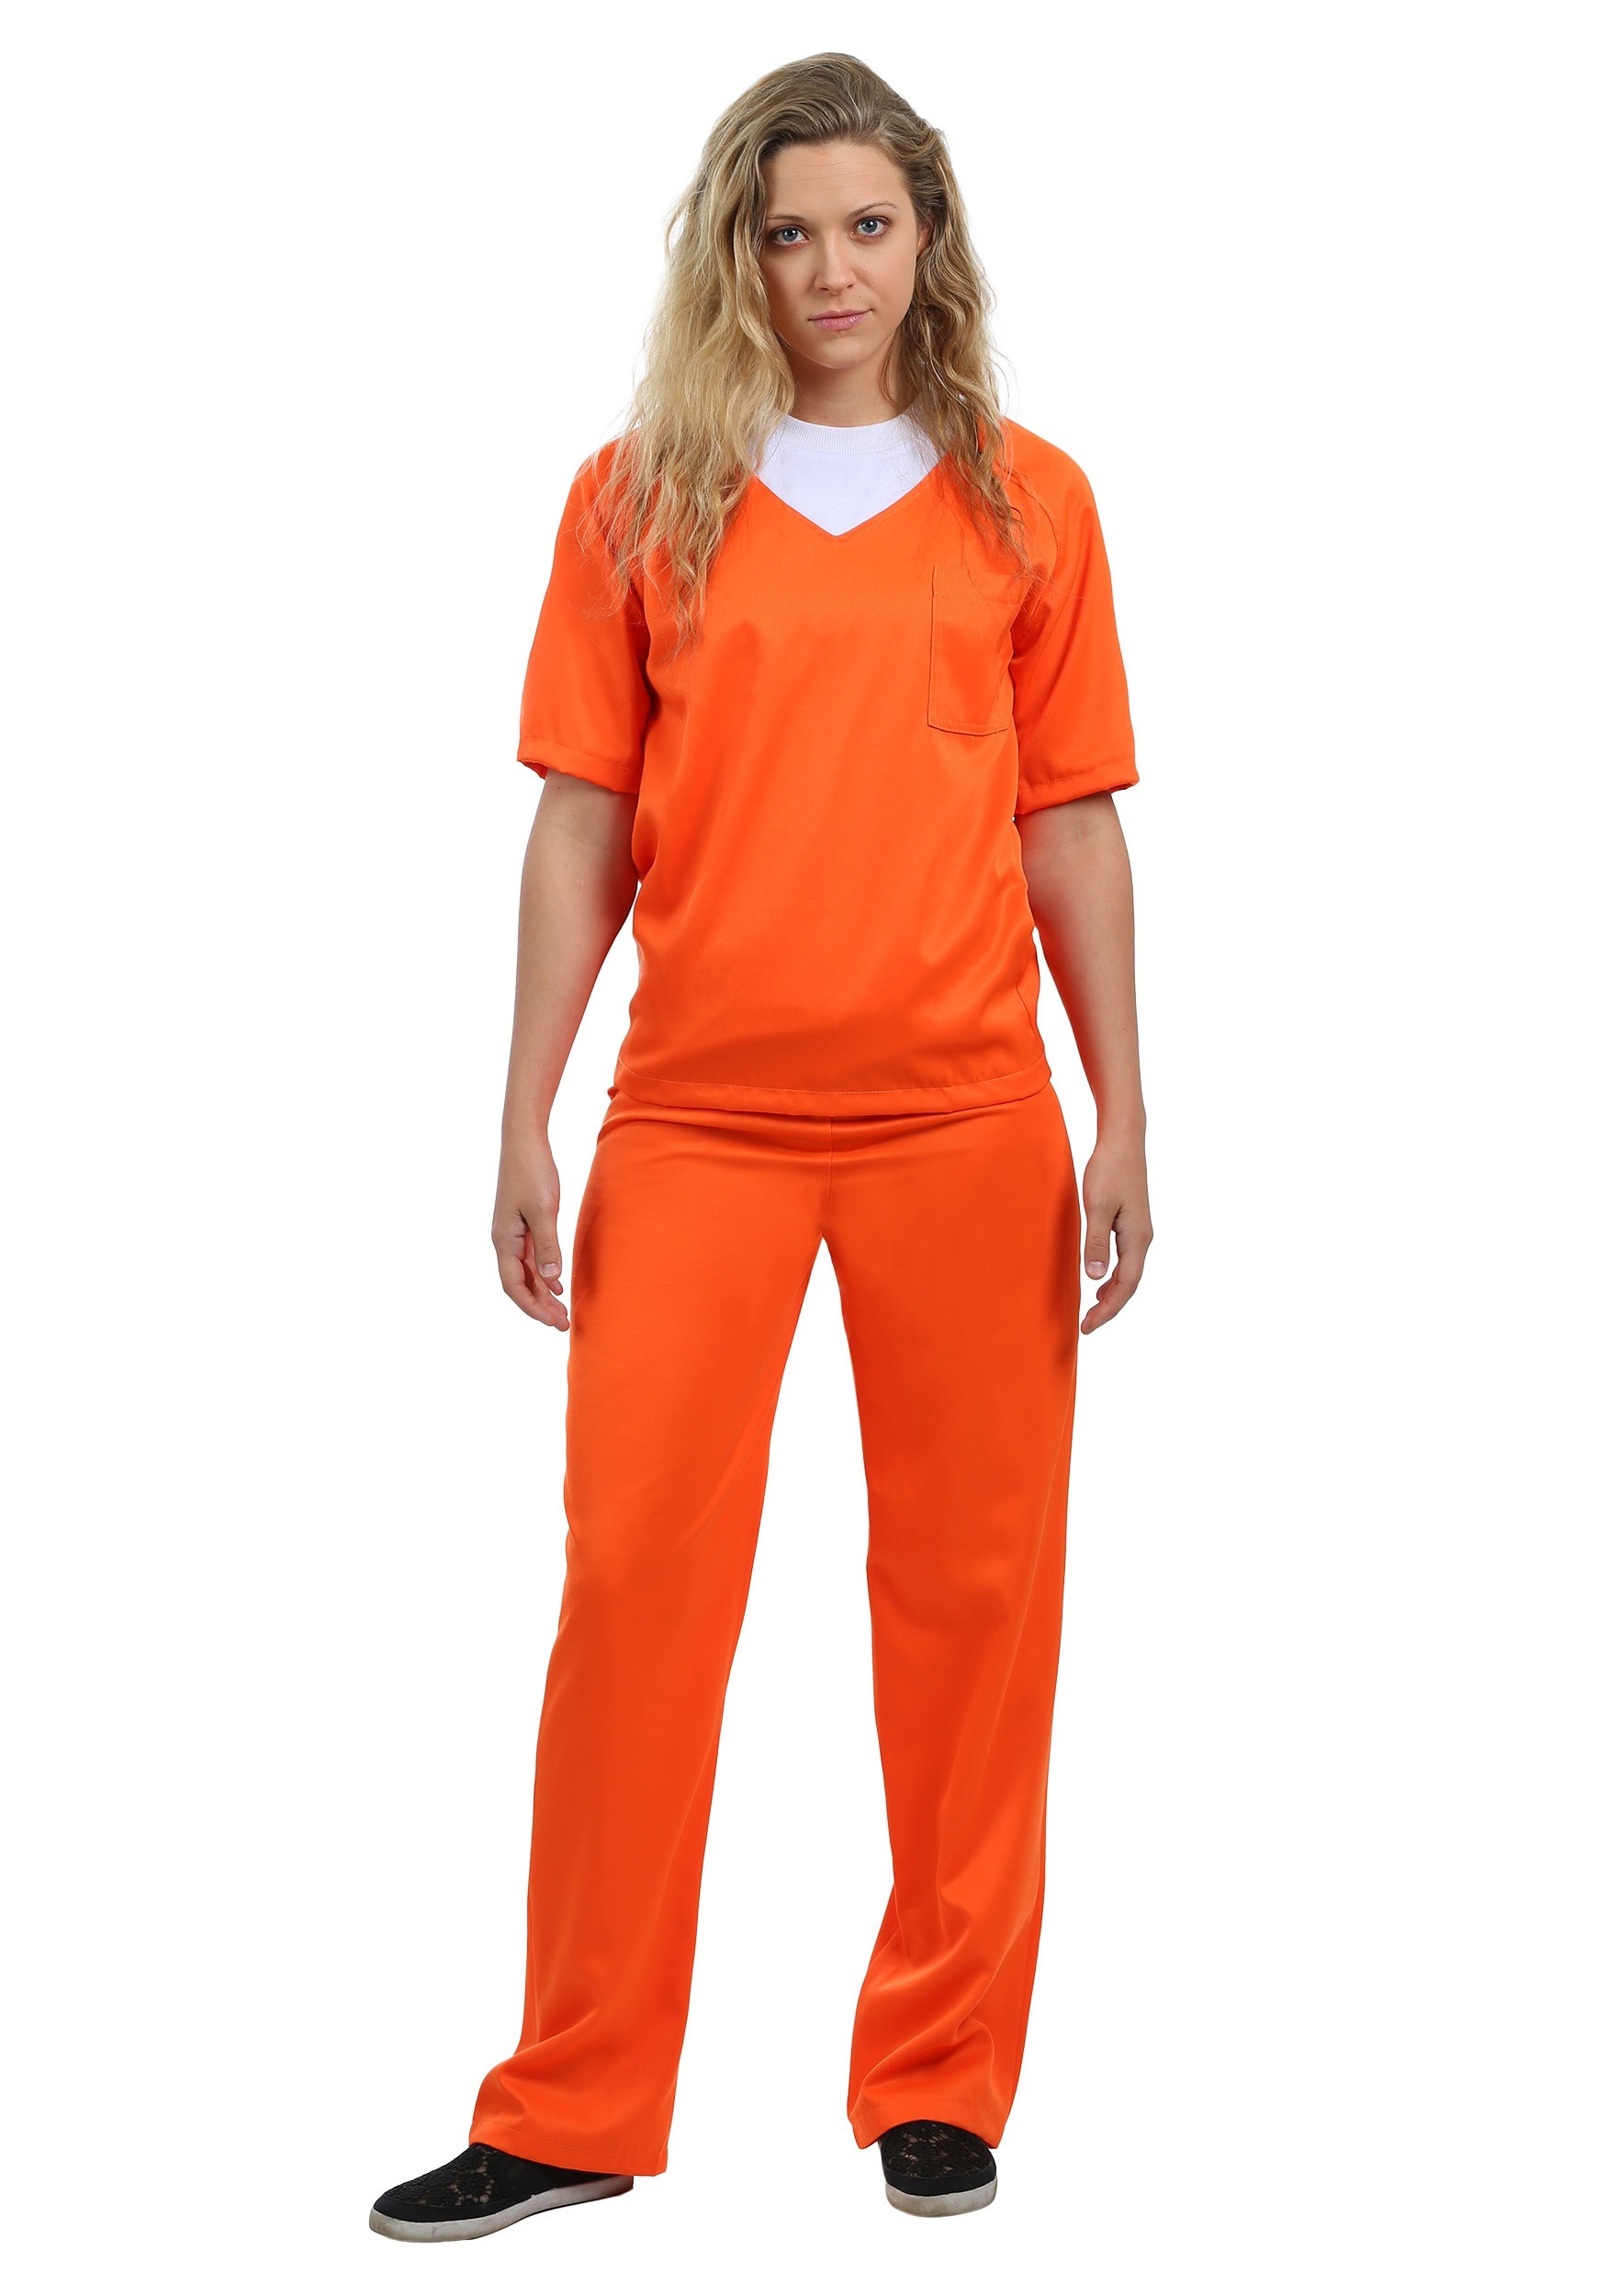 Cool Women In Prison Jumpsuits Child Prisoner Jumpsuit